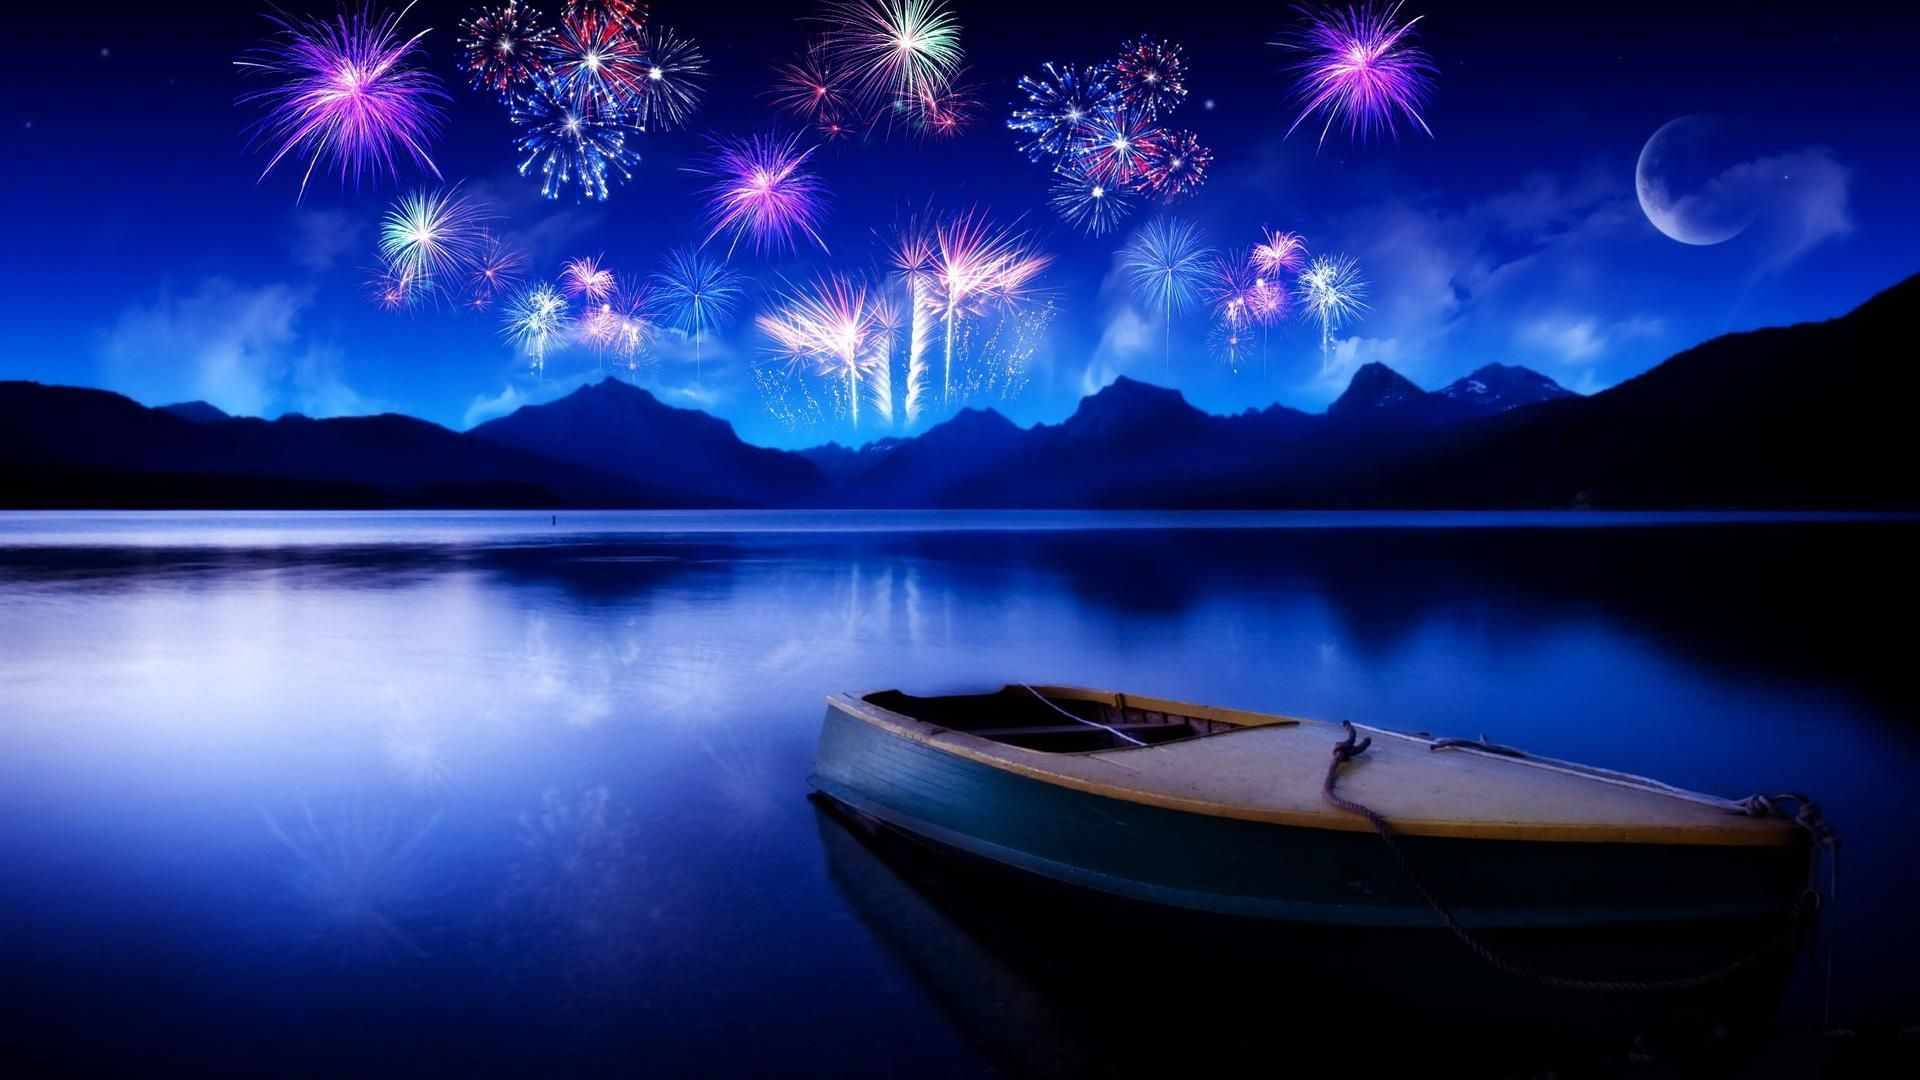 cool bright twilight fireworks lake desktop backgrounds widescreen